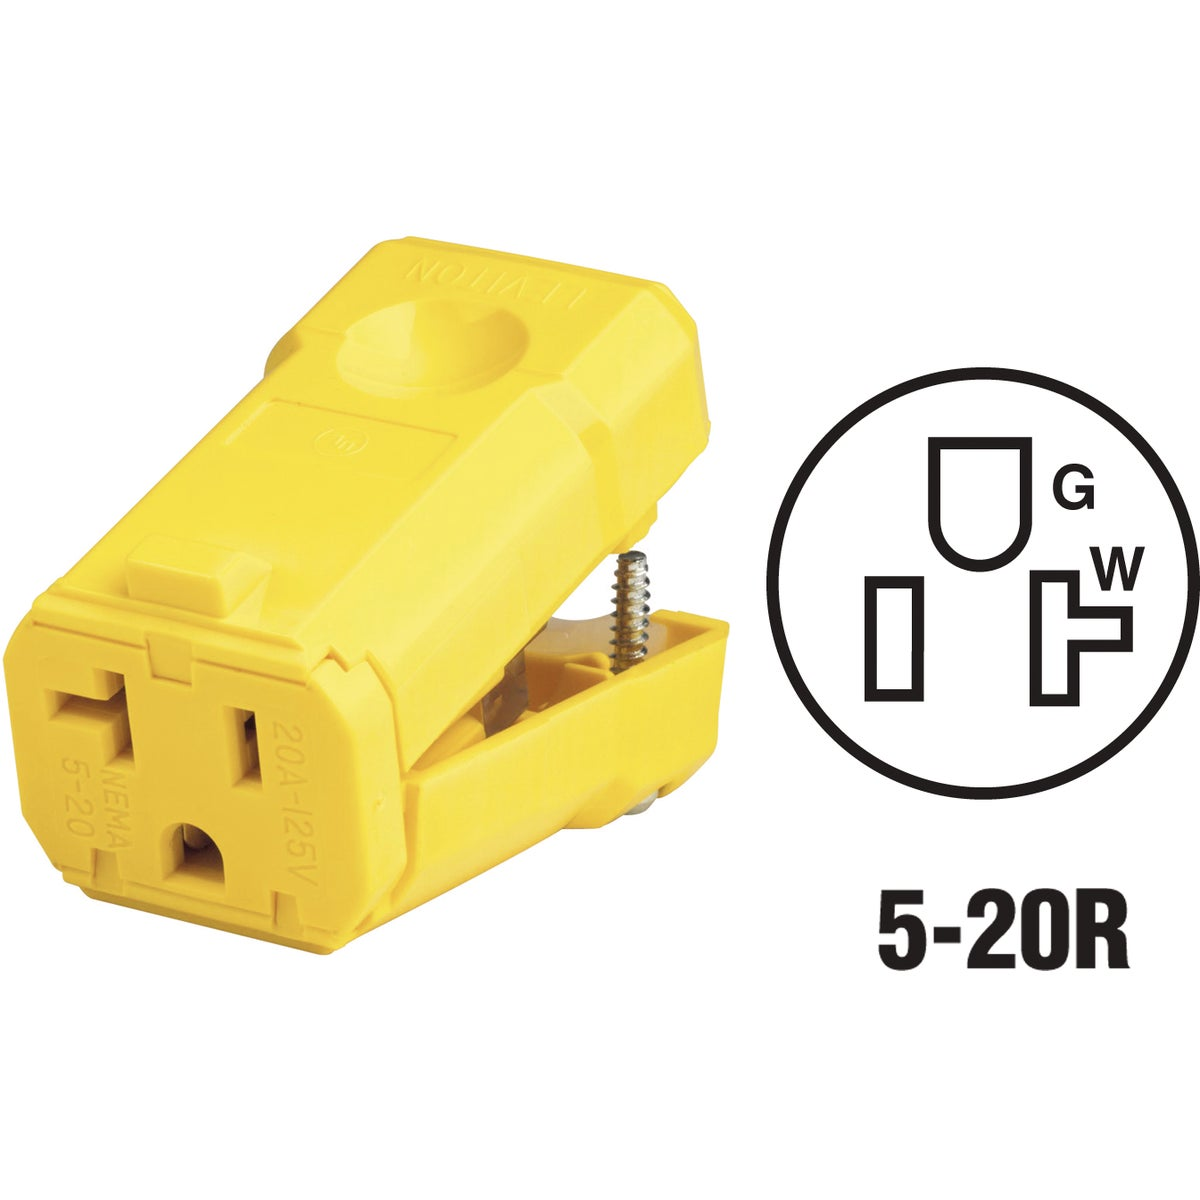 20A GRND CORD CONNECTOR - 0815359VY by Leviton Mfg Co